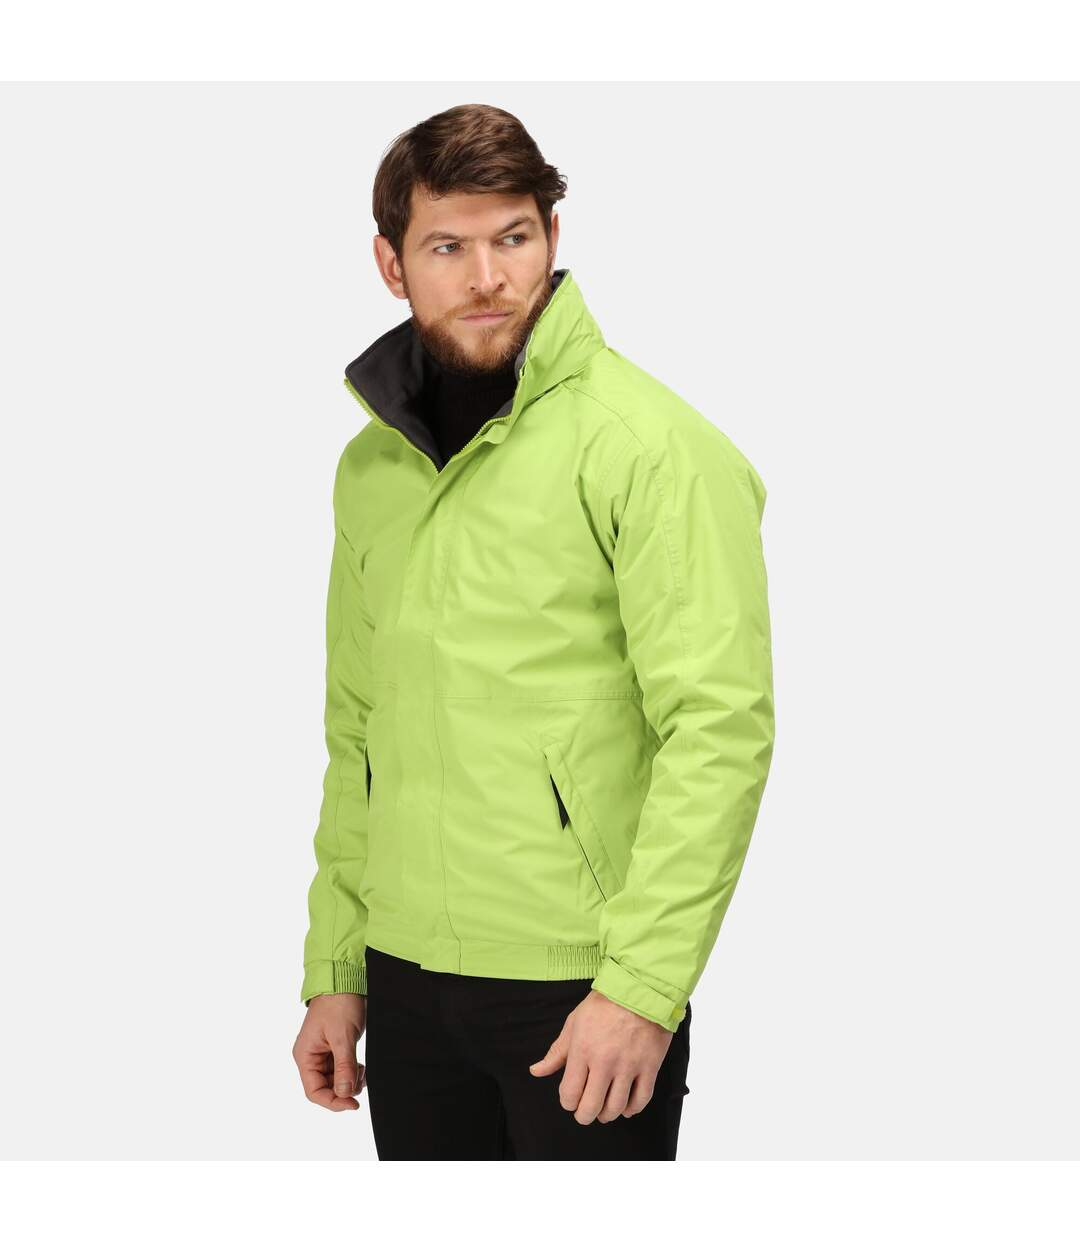 Regatta Dover Waterproof Windproof Jacket (Thermo-Guard Insulation) (Key Lime/Seal Grey) - UTRG1425